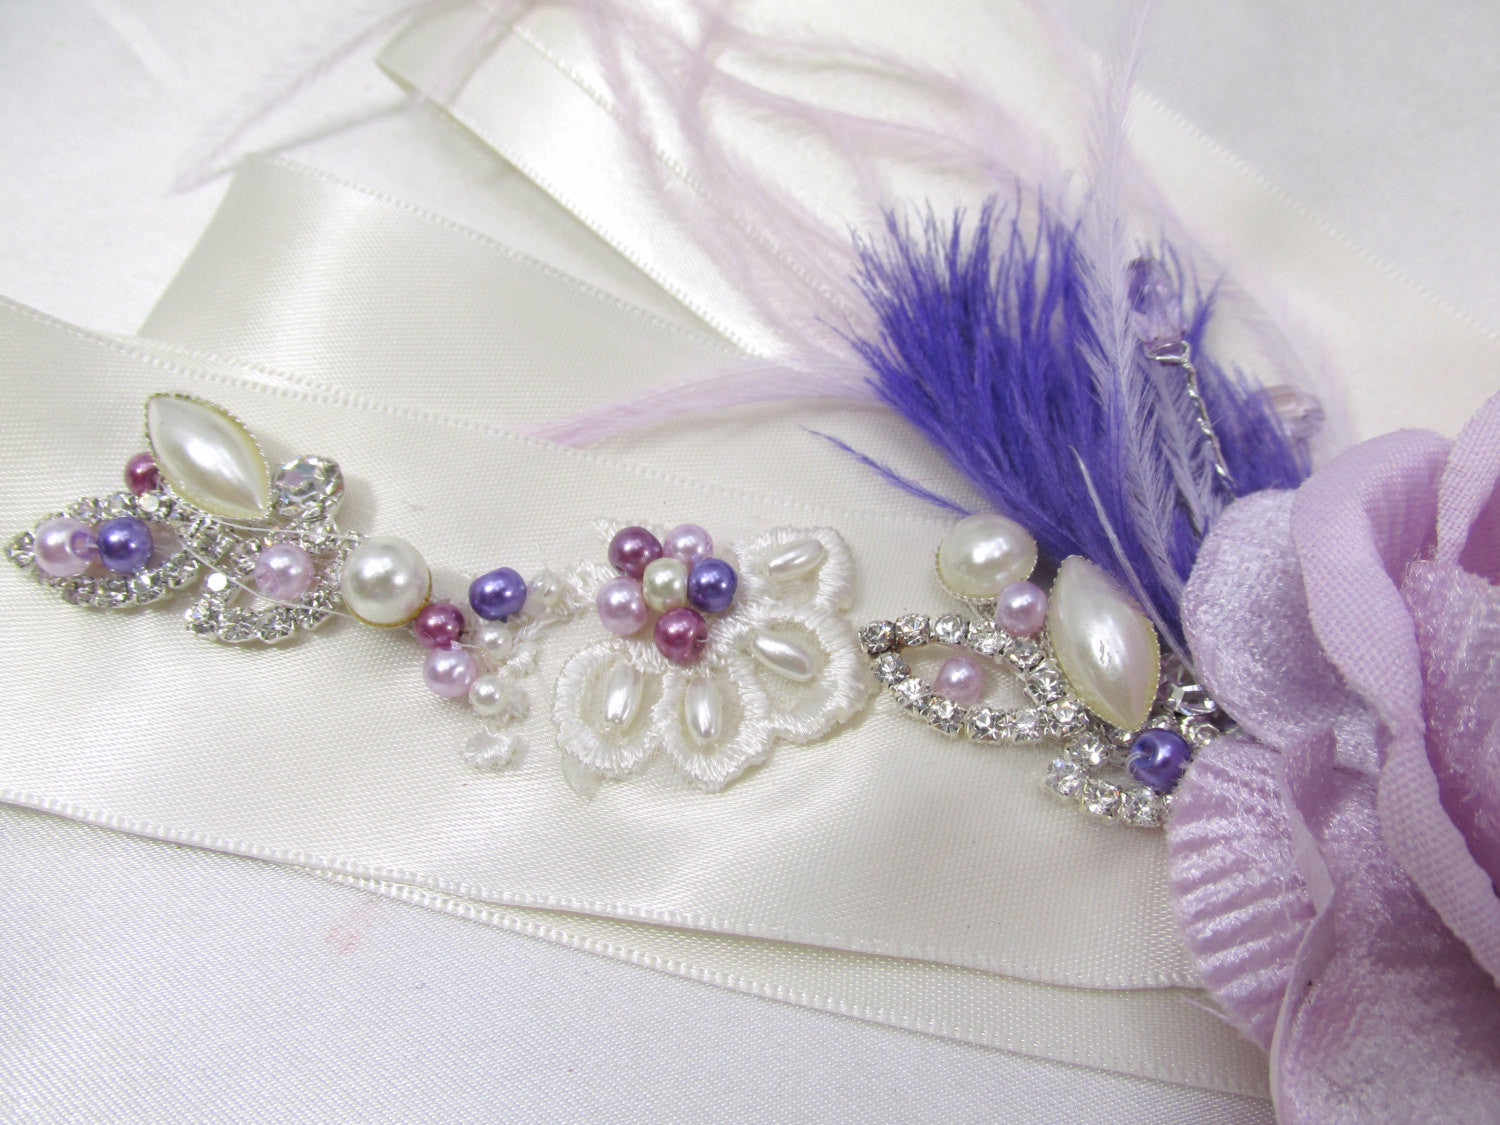 Radiant Orchid Beaded Bridal Sash or Belt with Swarovski Pearls and Rhinestones - Odyssey Creations